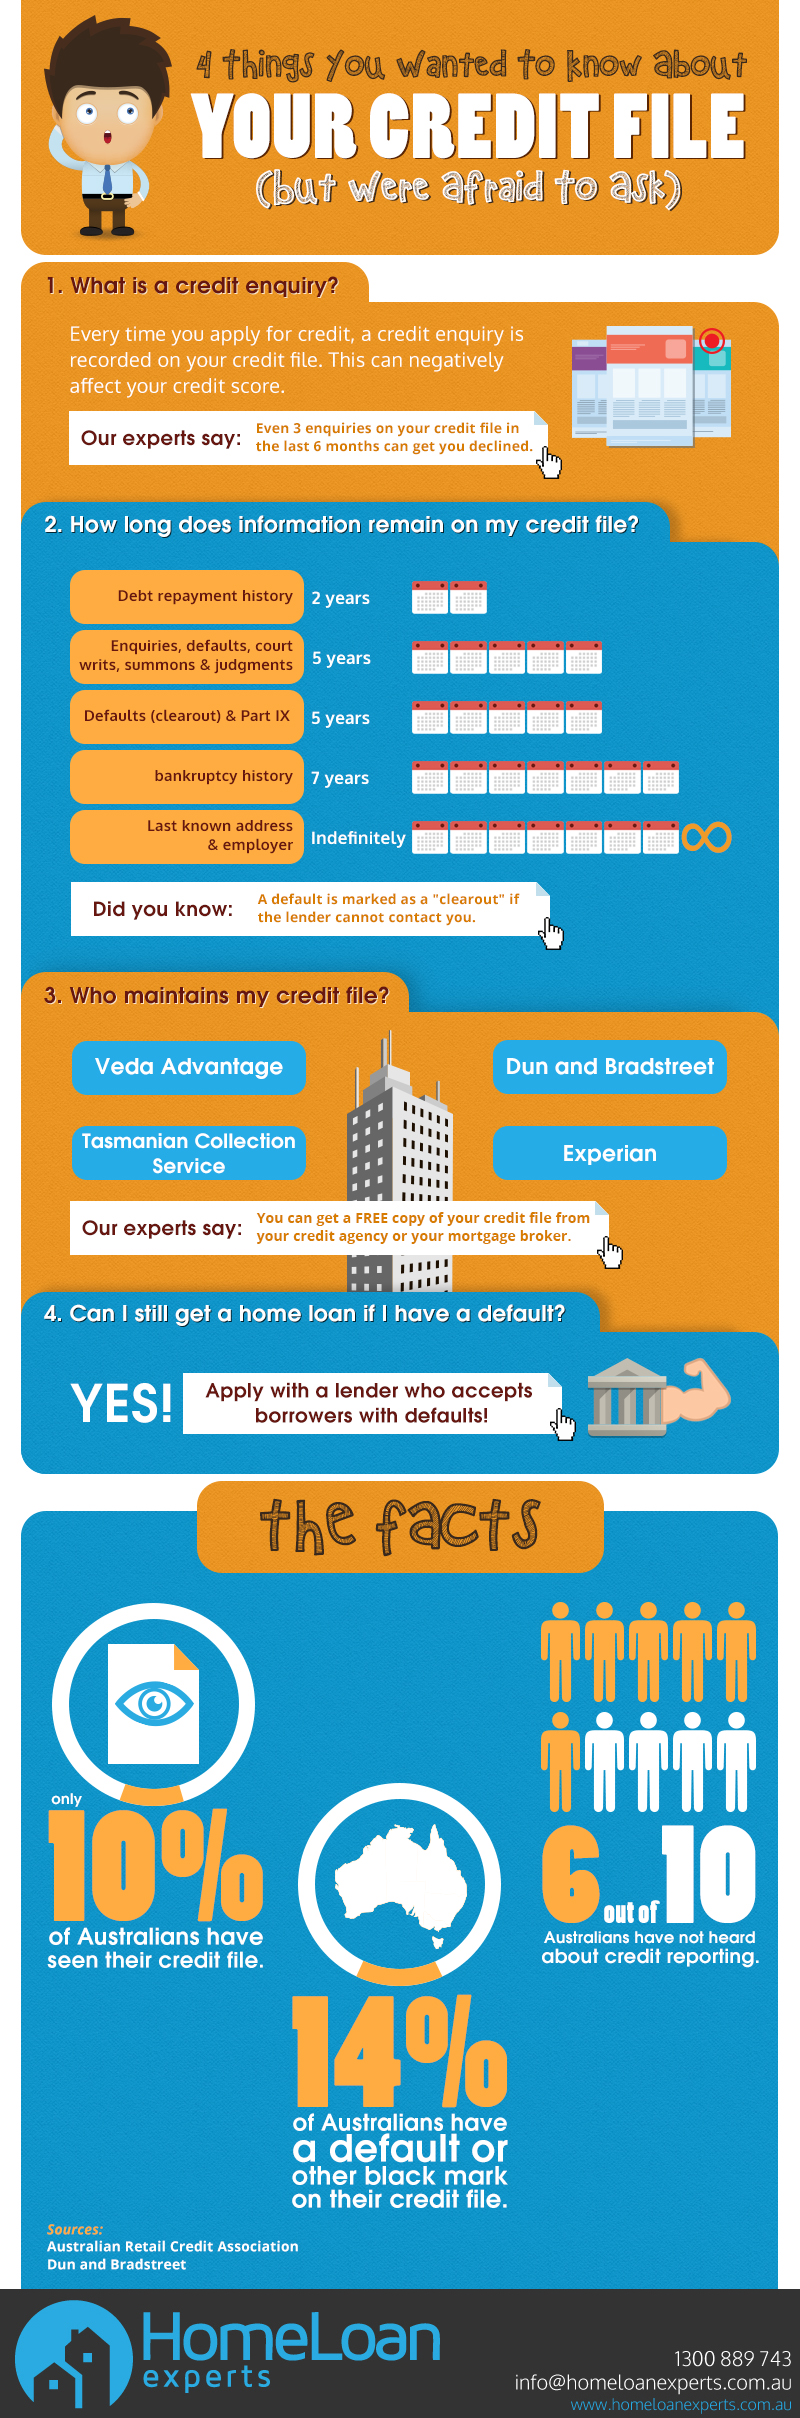 4 Things You Wanted To Know About Your Credit File Infographic